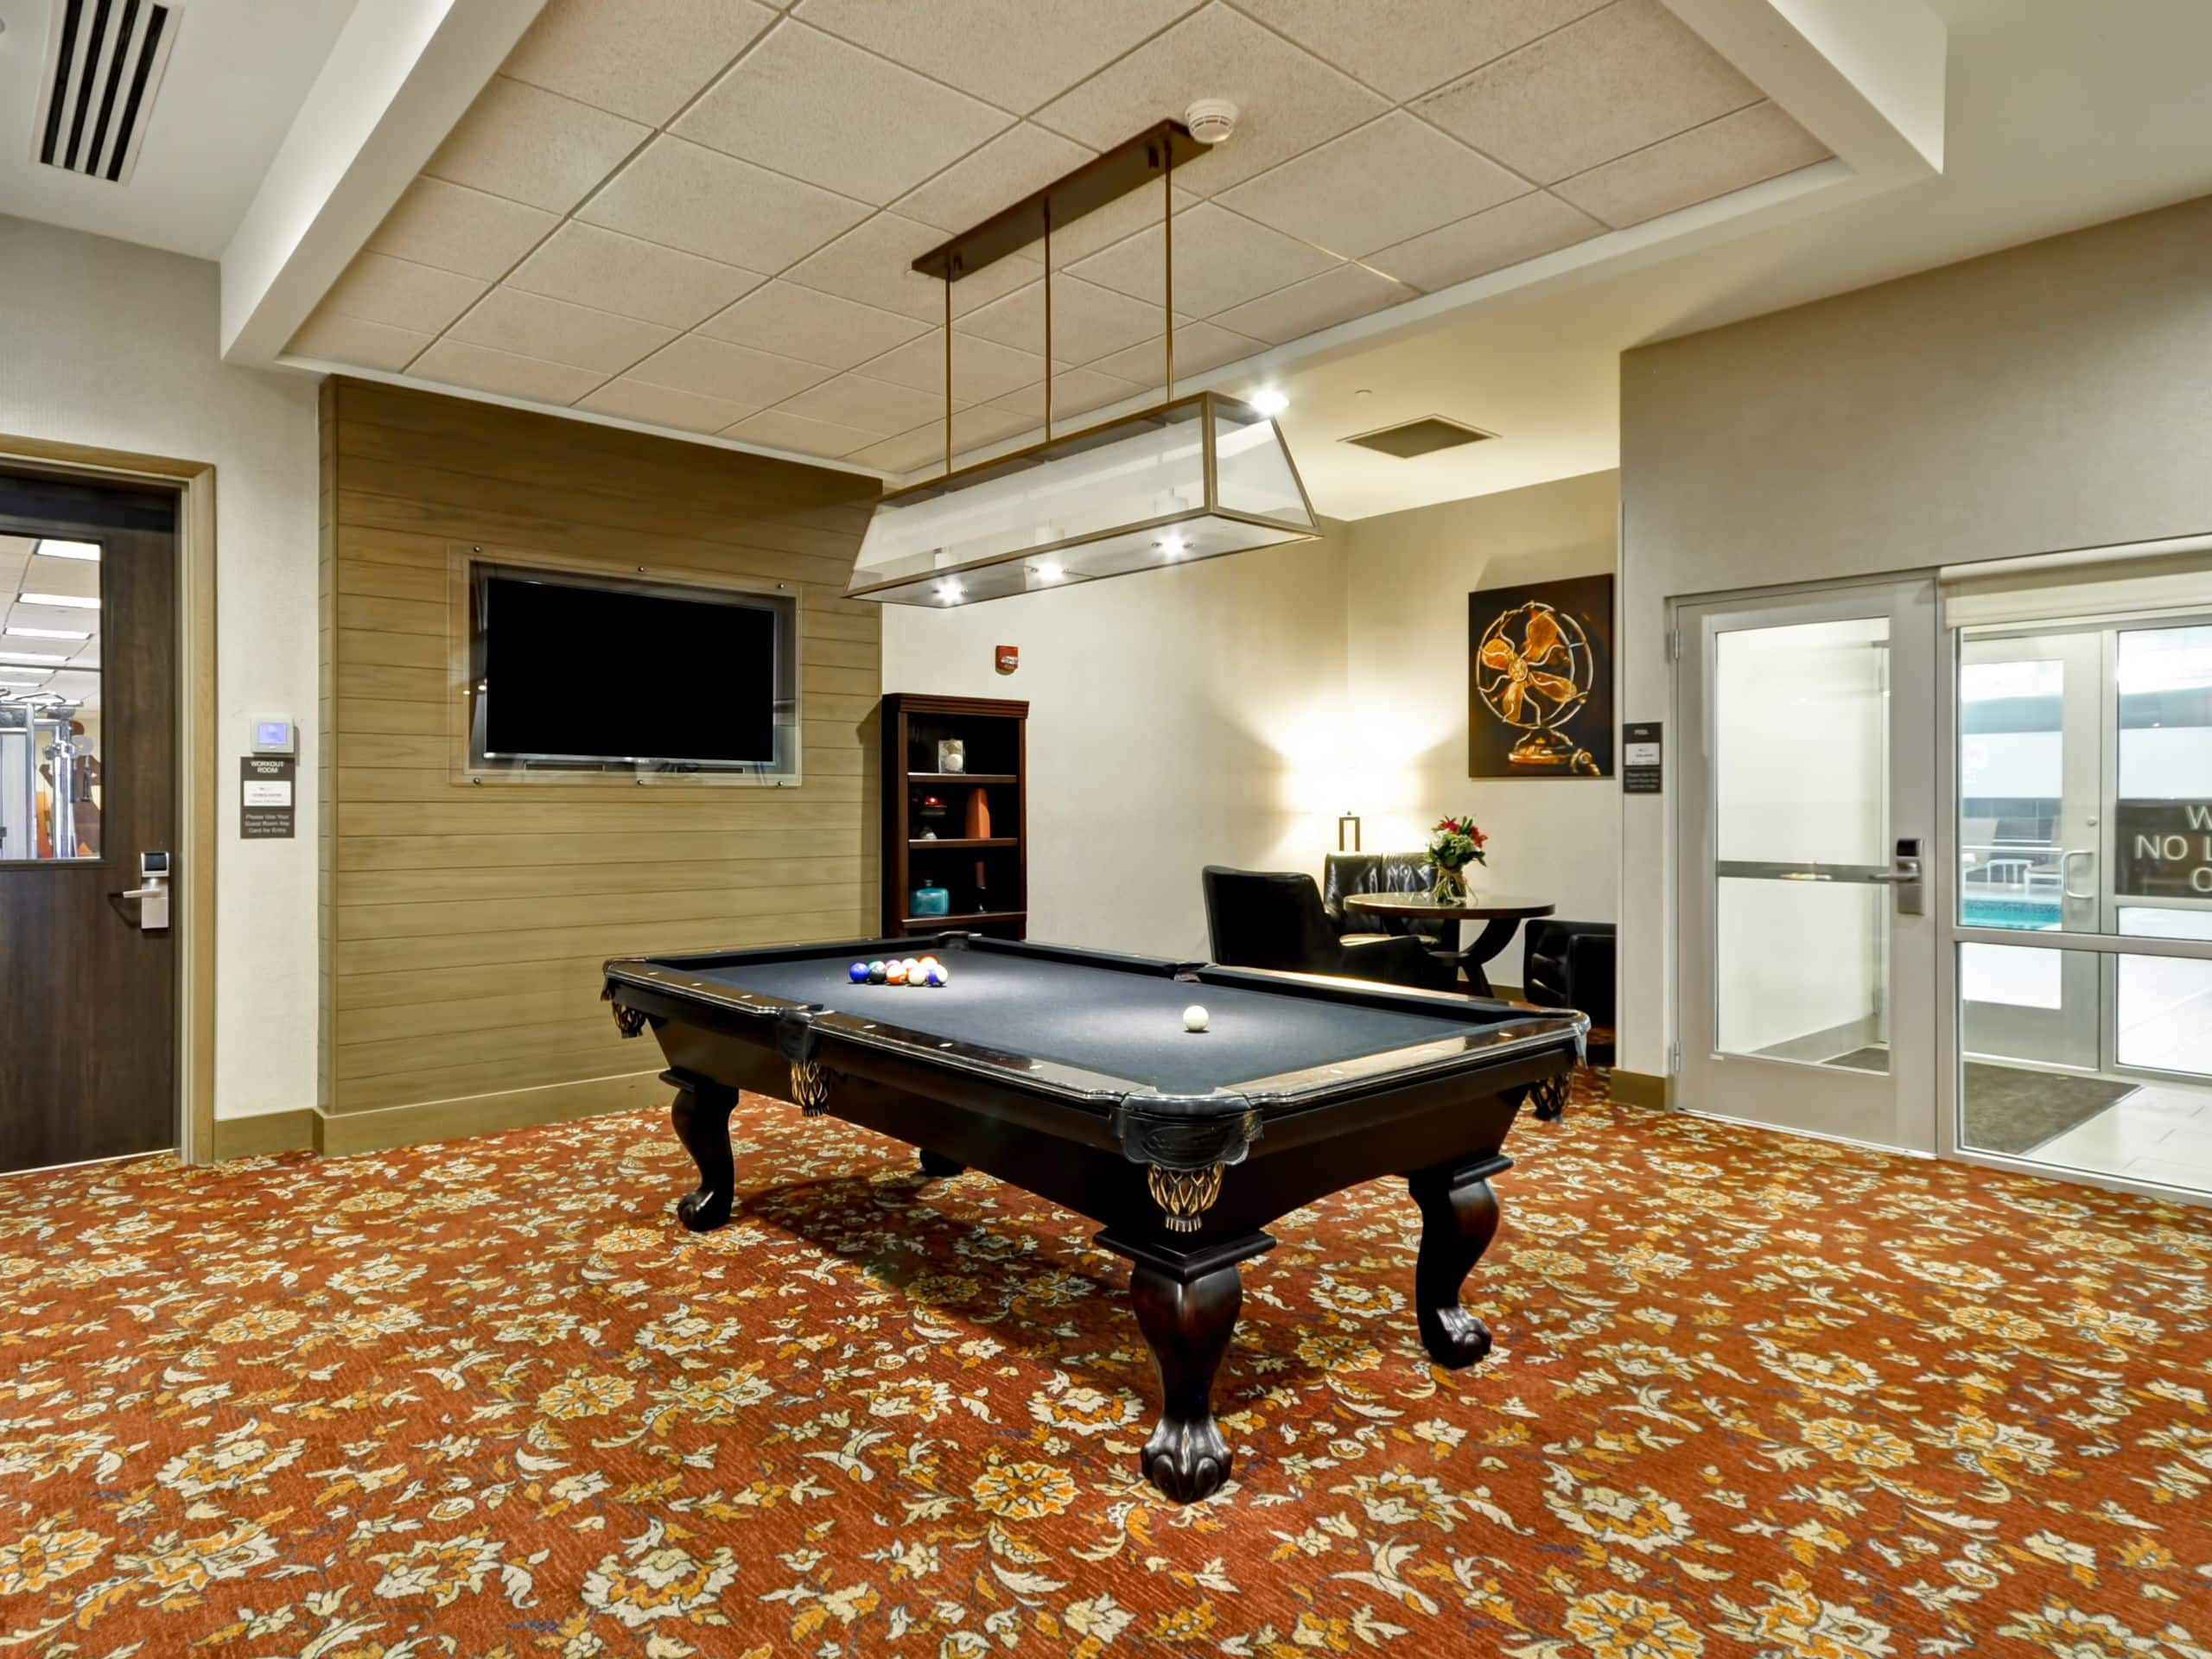 Atlanta Cobb Galleria Hotel Hyatt House AtlantaCobb Galleria - Pool table rental atlanta